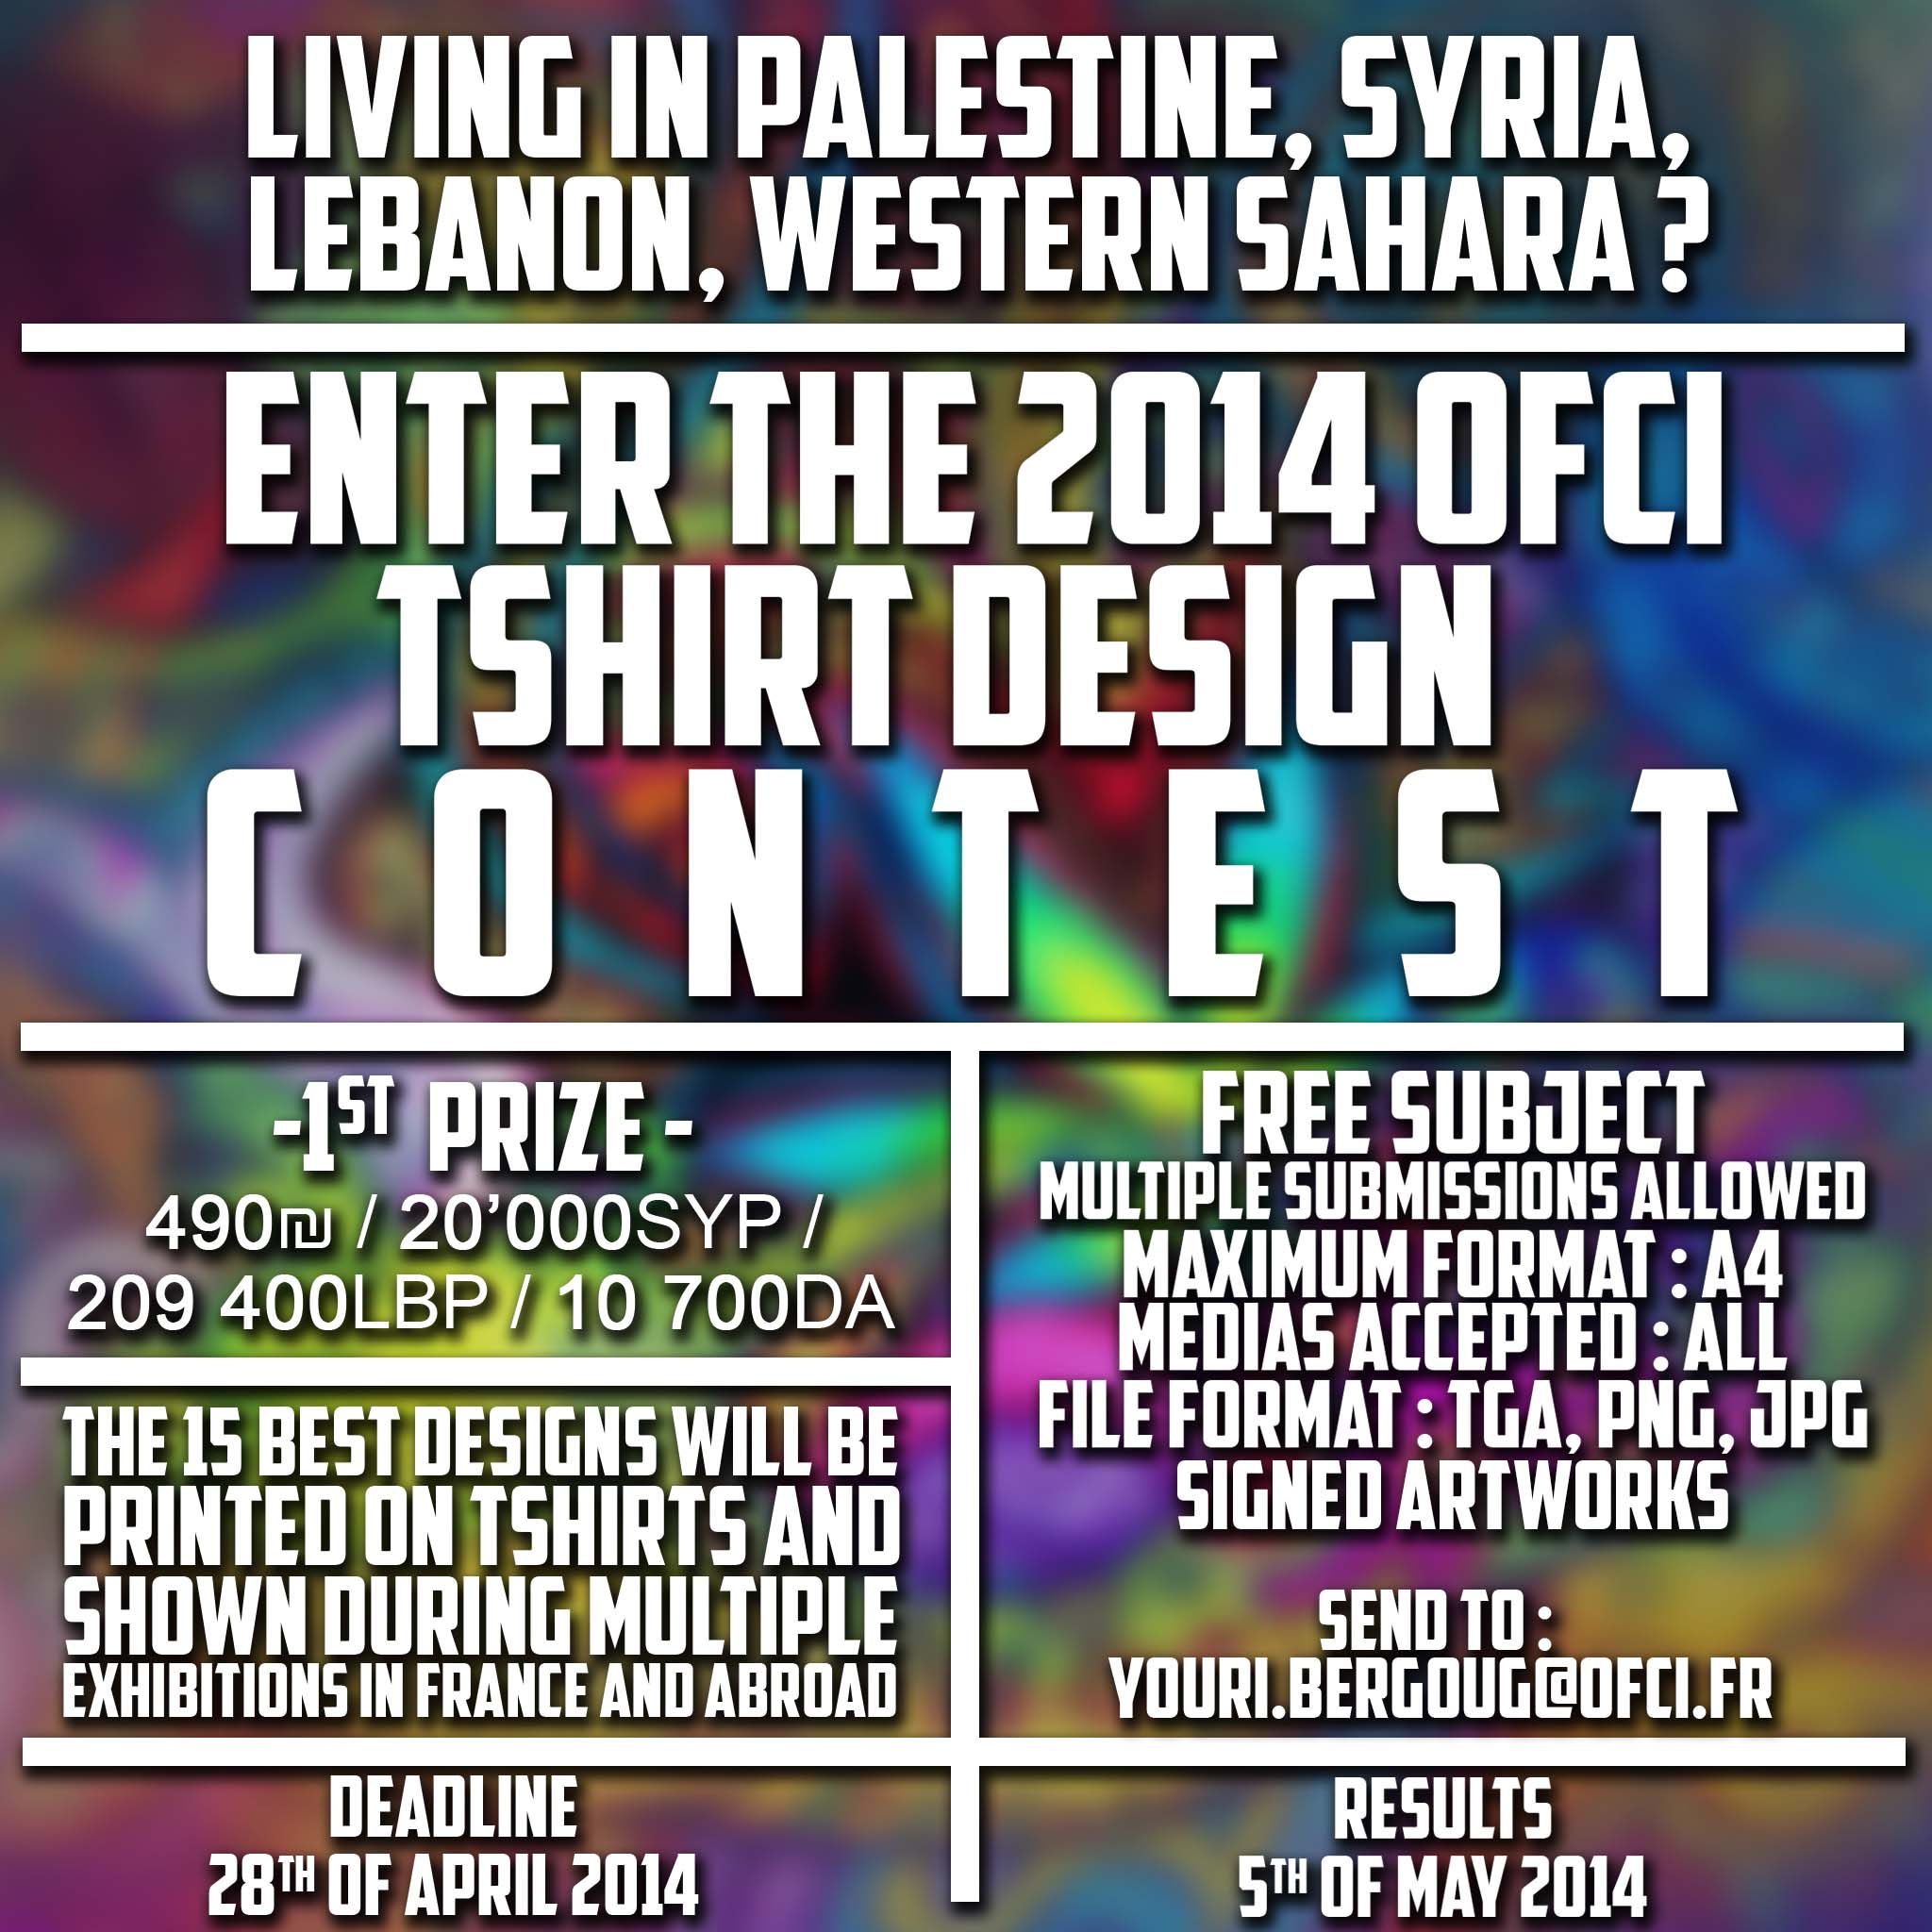 TshirtContest